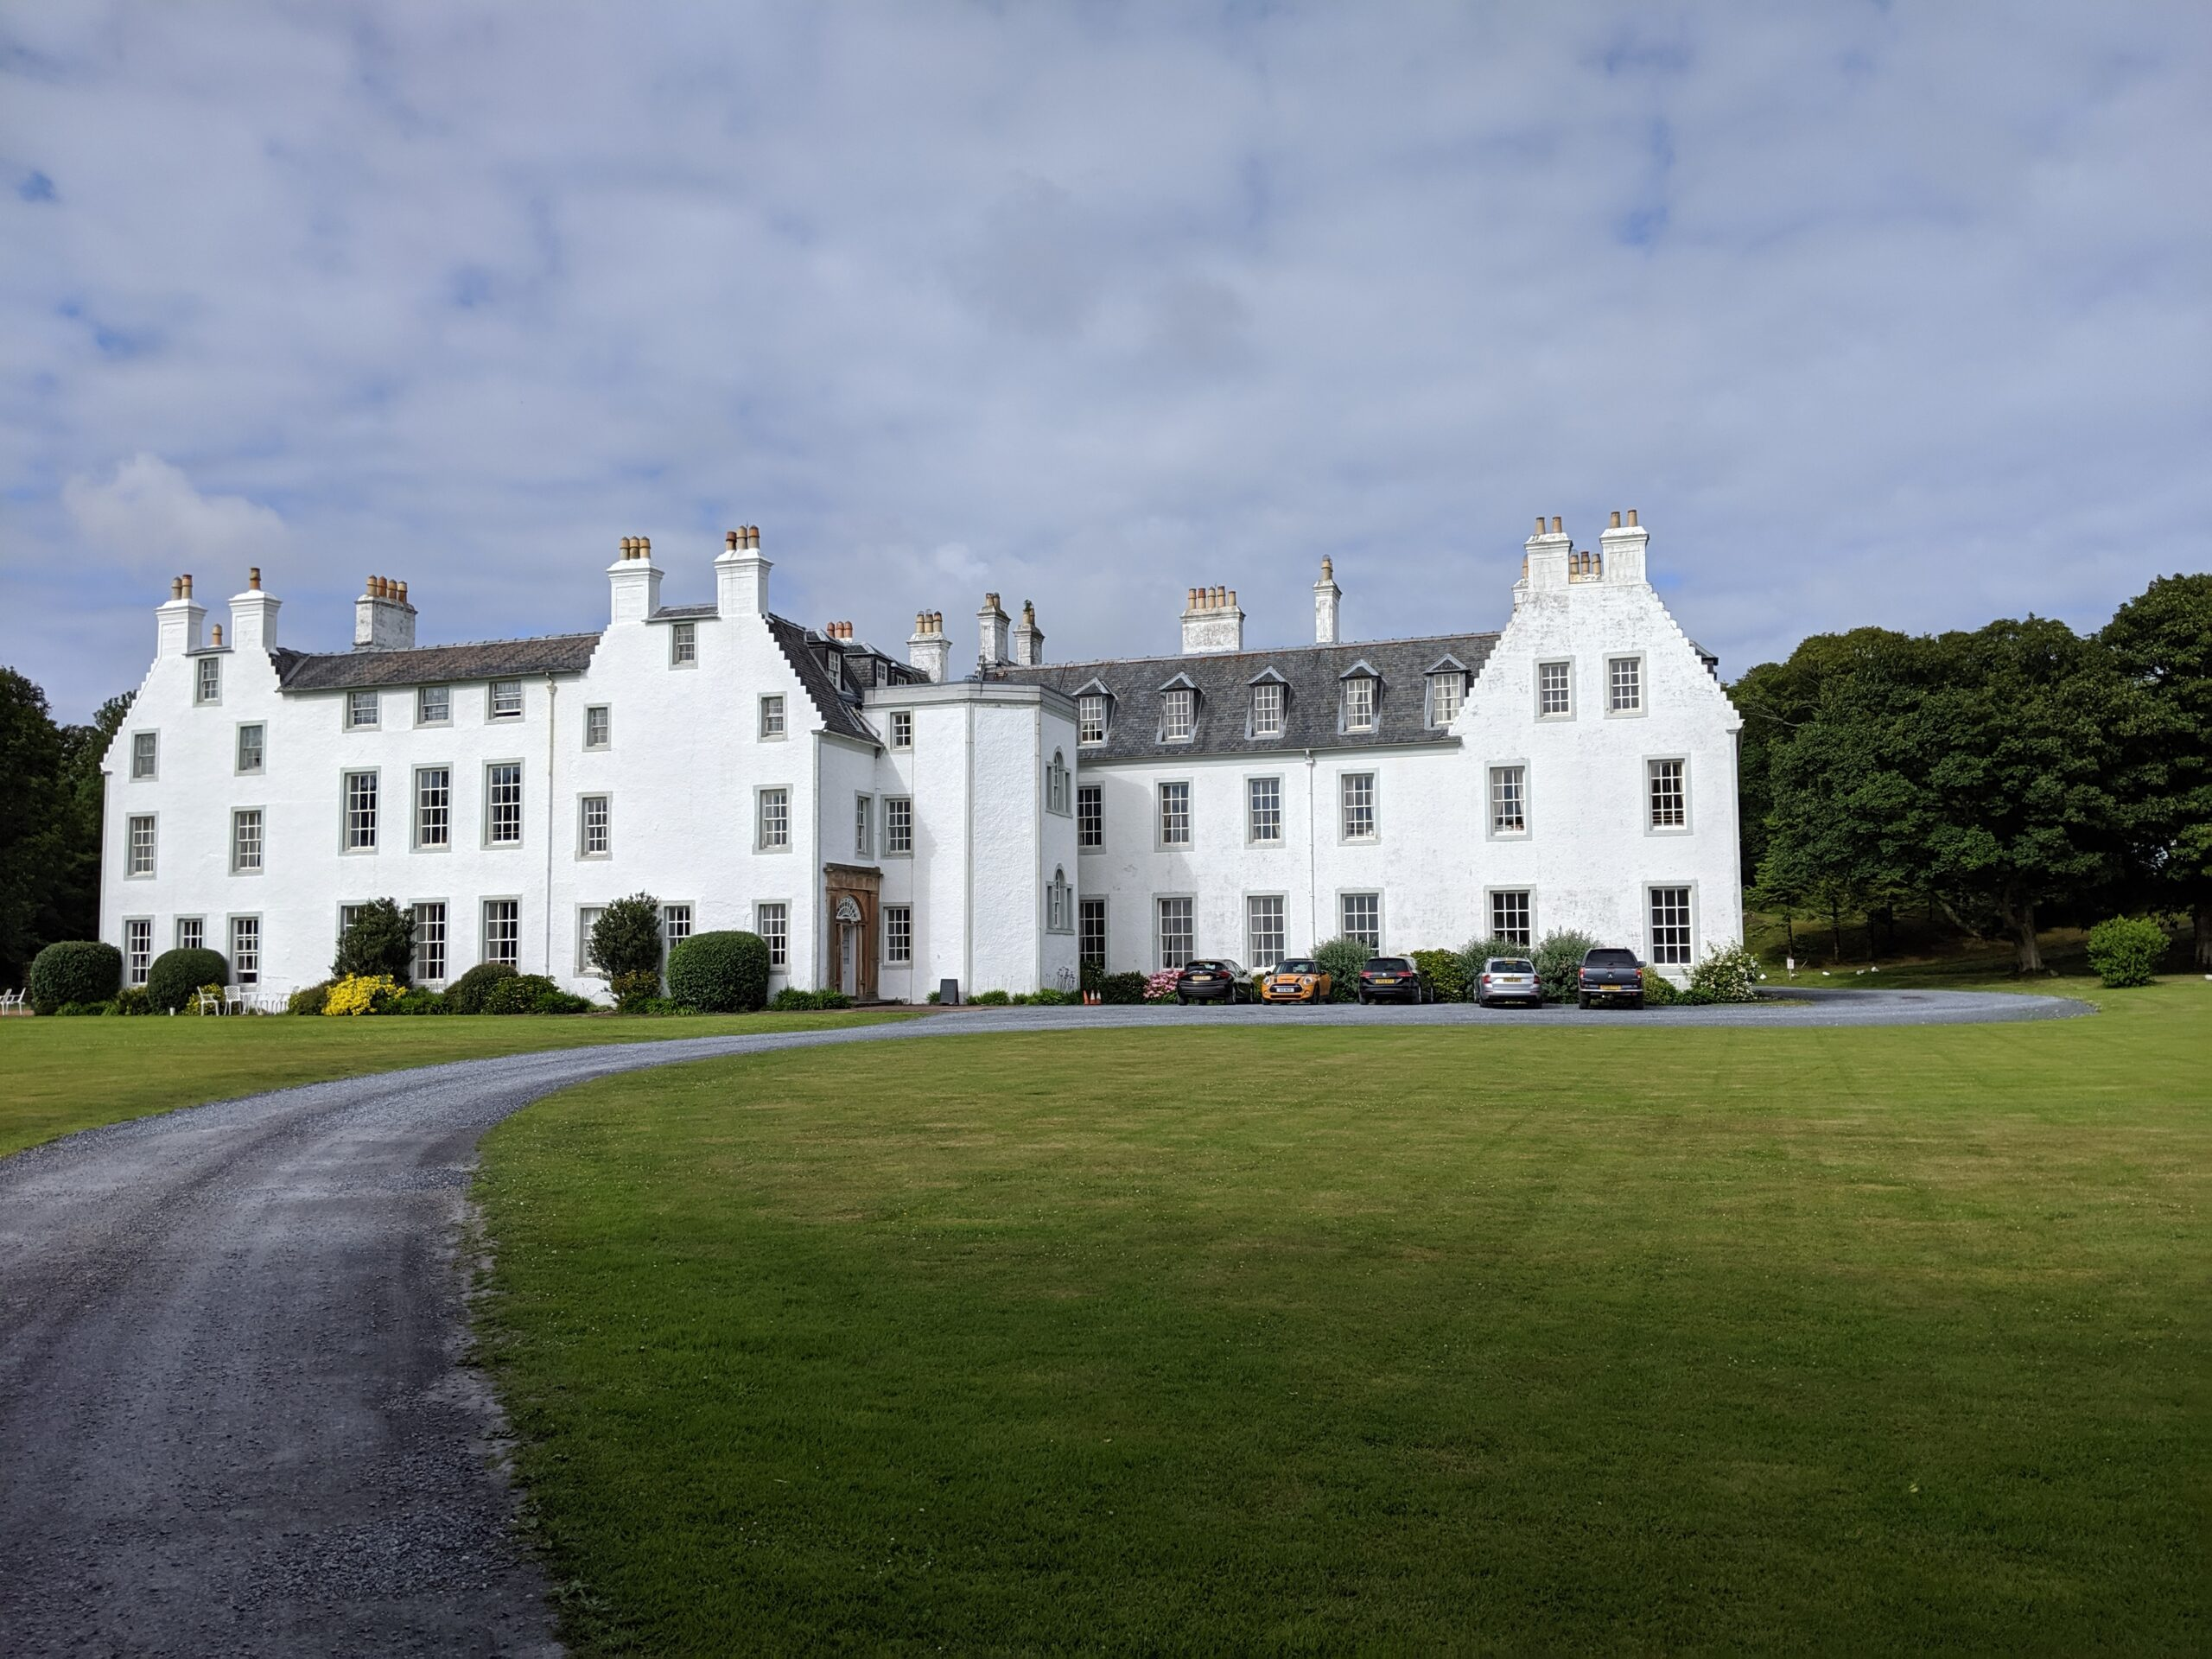 White mansion with more than a dozen chimneys, two storeys, and attic windows below the grey roof. Photograph across a wide green lawn and lane. The main entrance in the center faces to the east side.